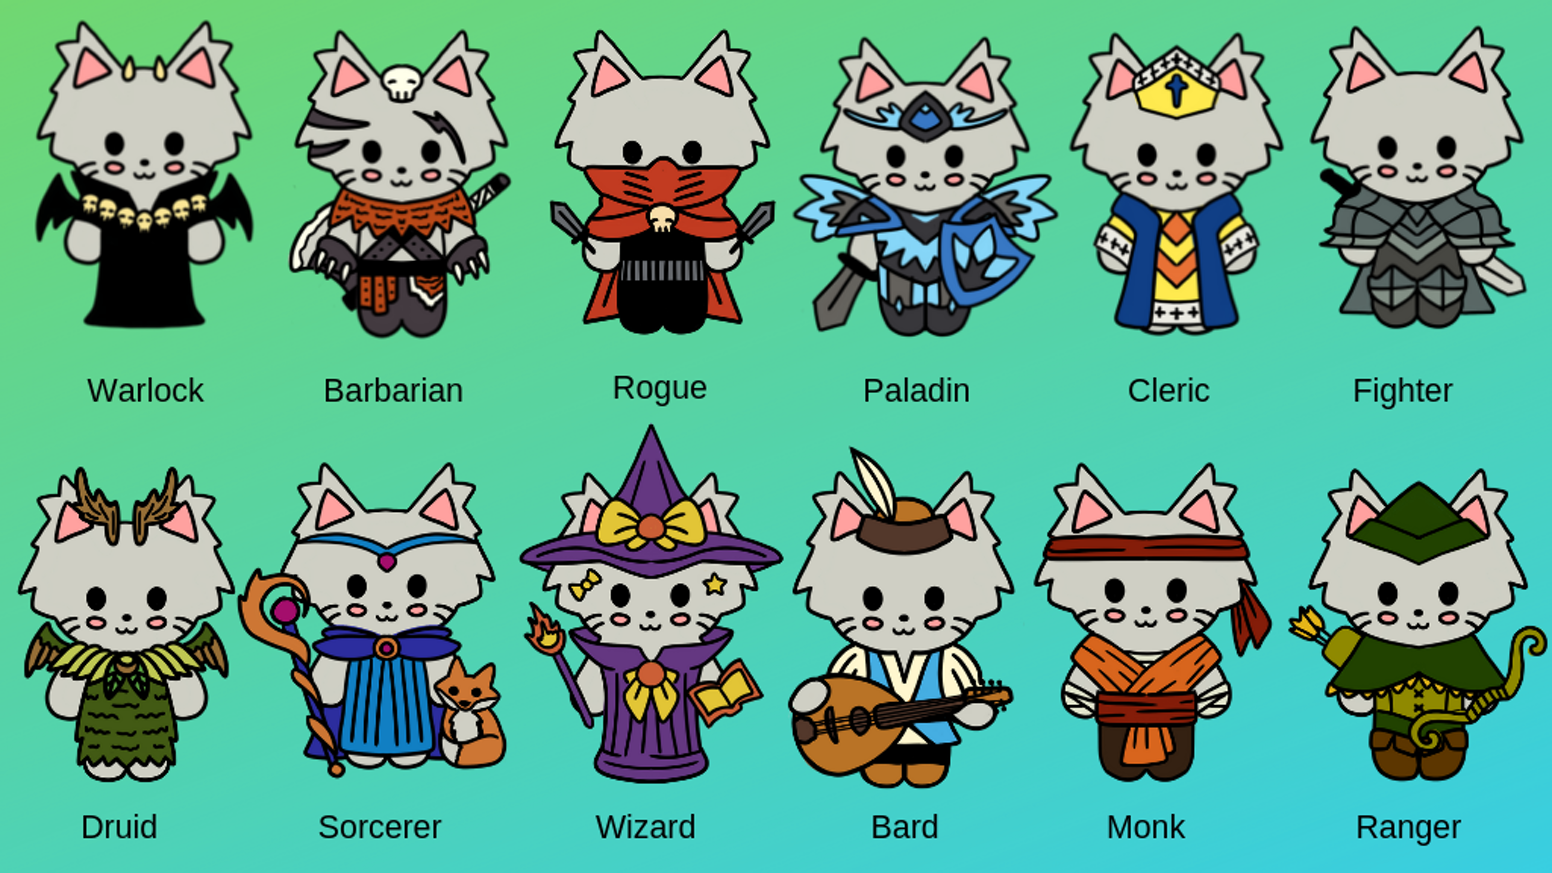 """1"""" soft enamel pins for popular RPG character classes, in cat form!"""